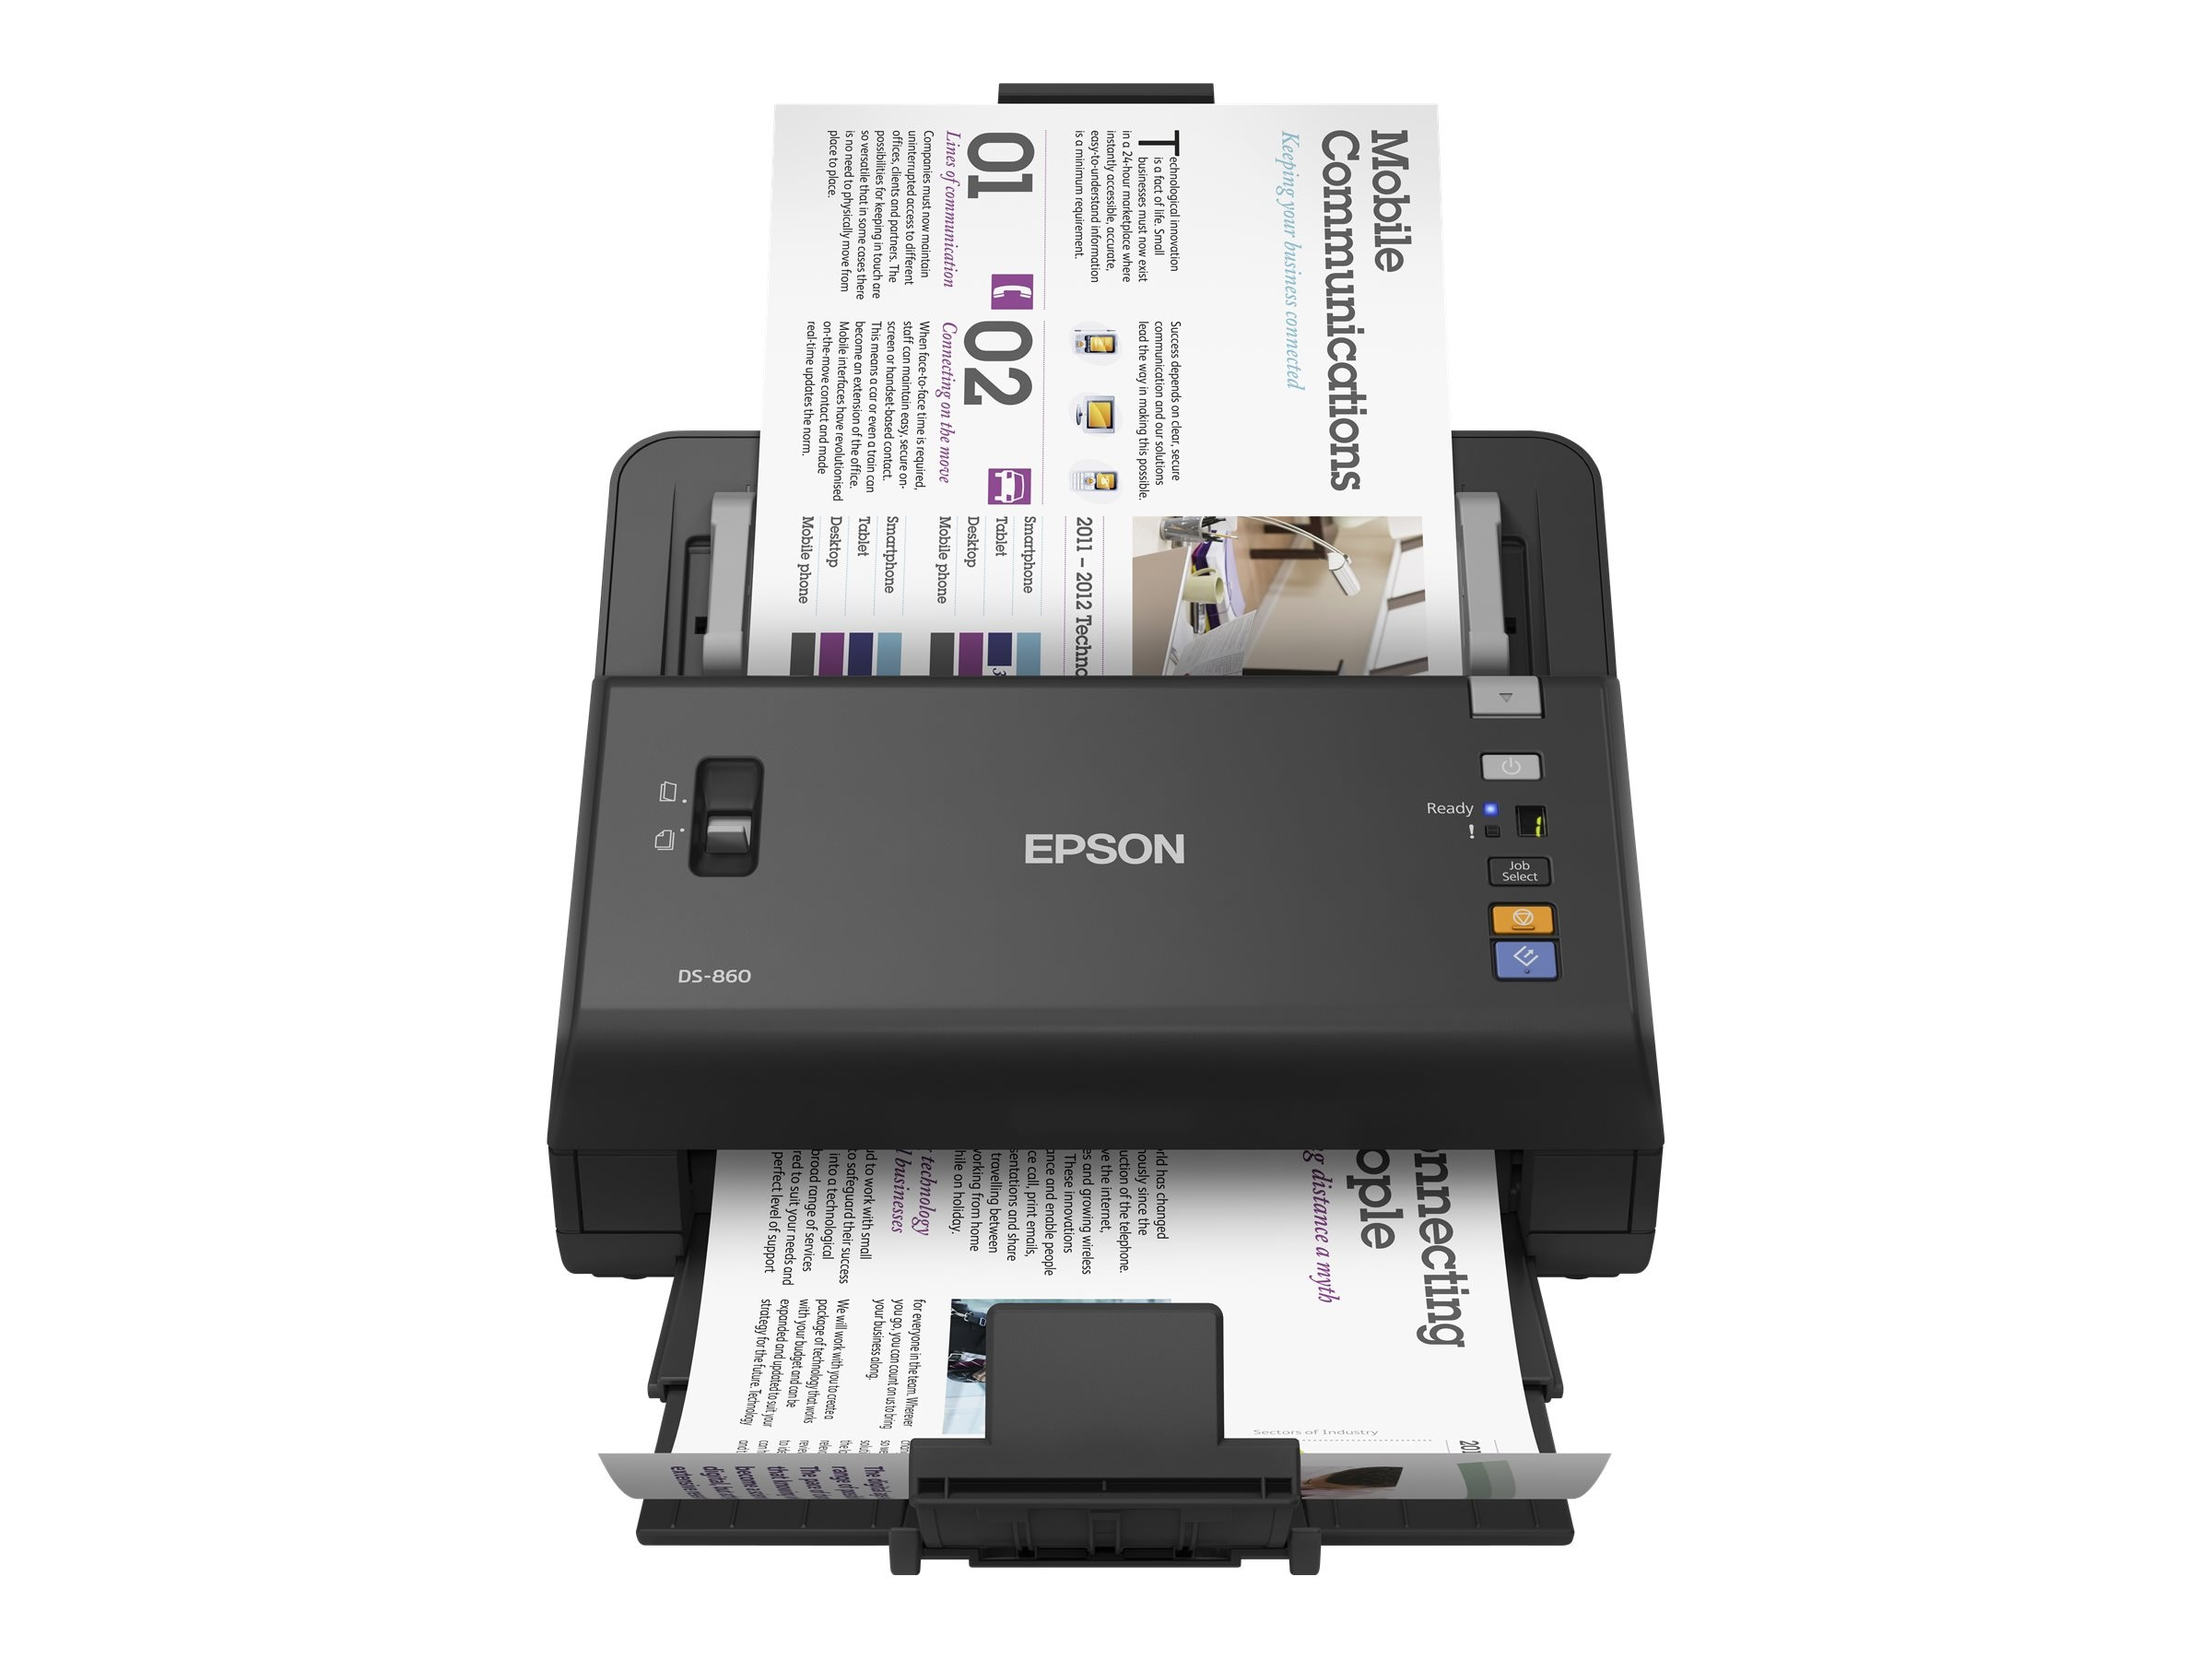 Epson WorkForce DS-860 65ppm 80-page ADF Document Scanner, B11B222201